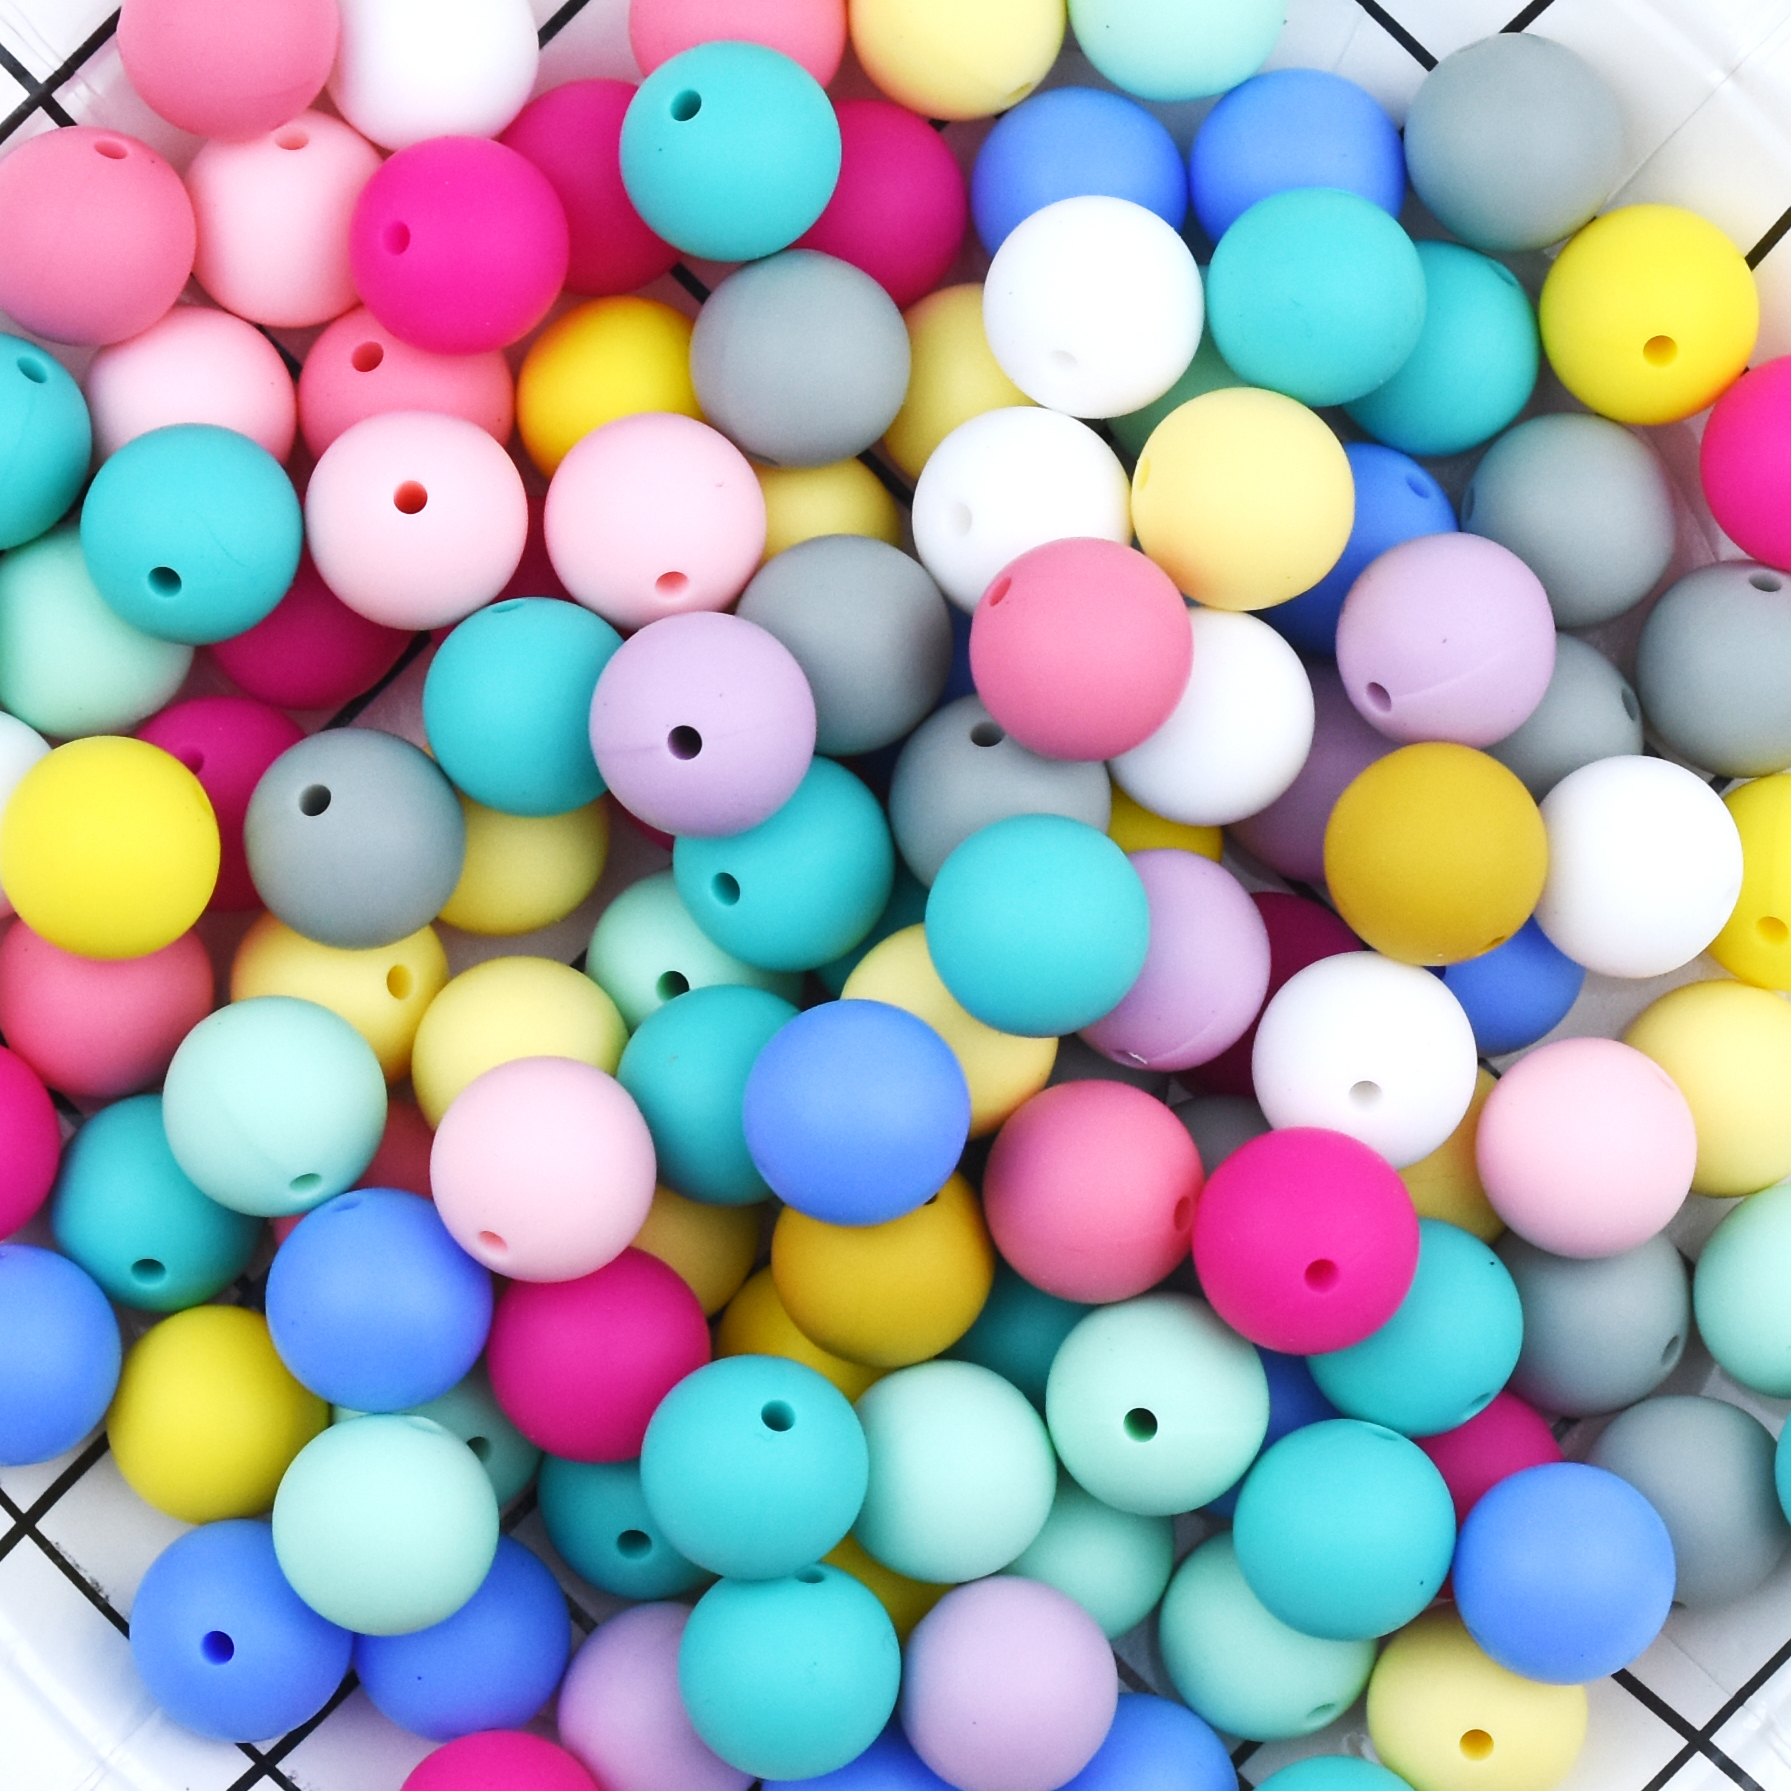 Happyfriends 10pcs 19mm Soft Silicon Bead Baby Chew Teething DIY Accessories Large Size Silicone Round Beads Baby Teethers